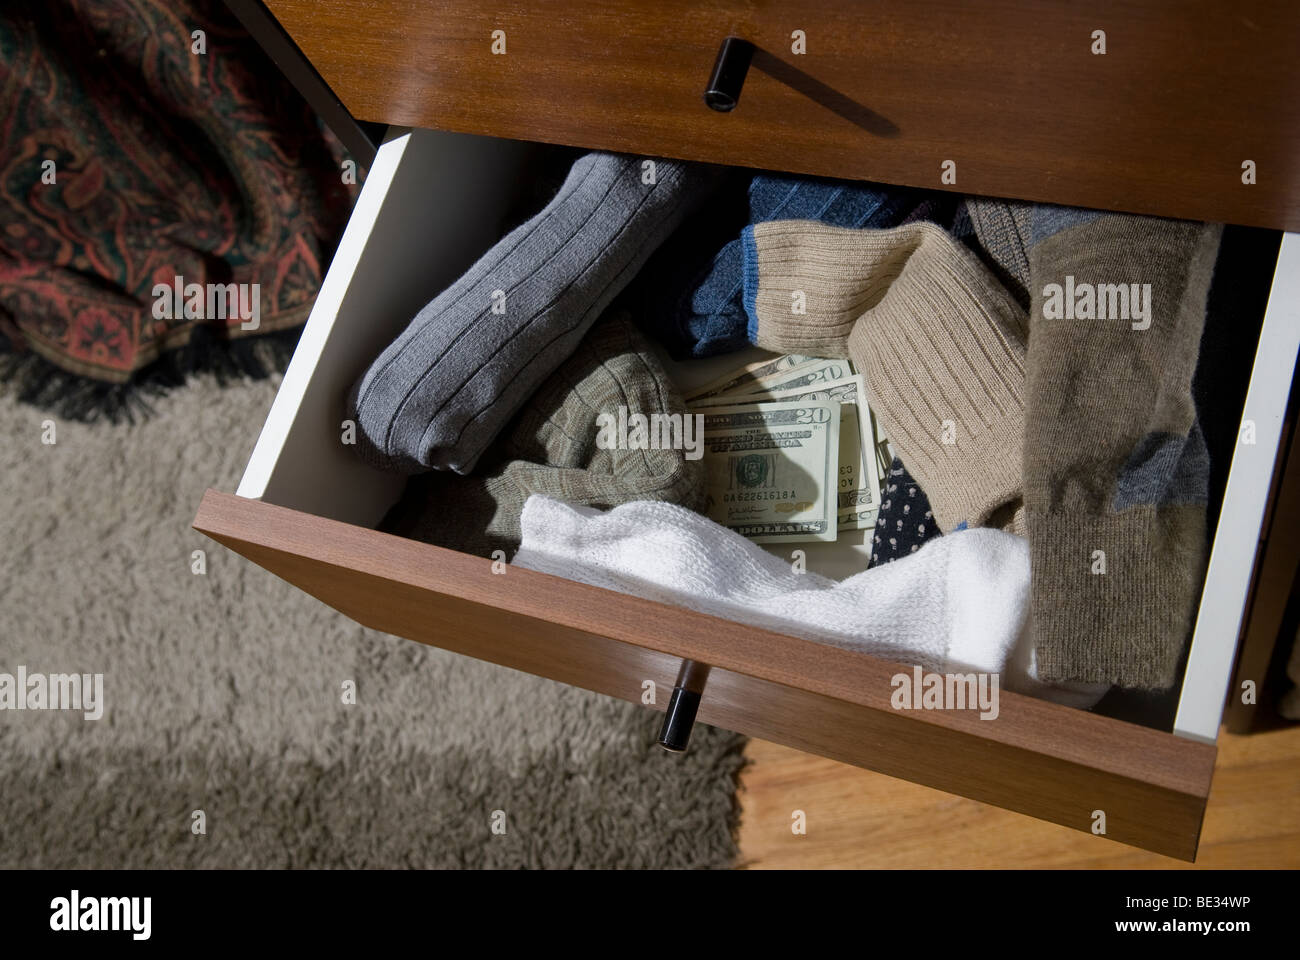 overhead view of money in drawer - Stock Image